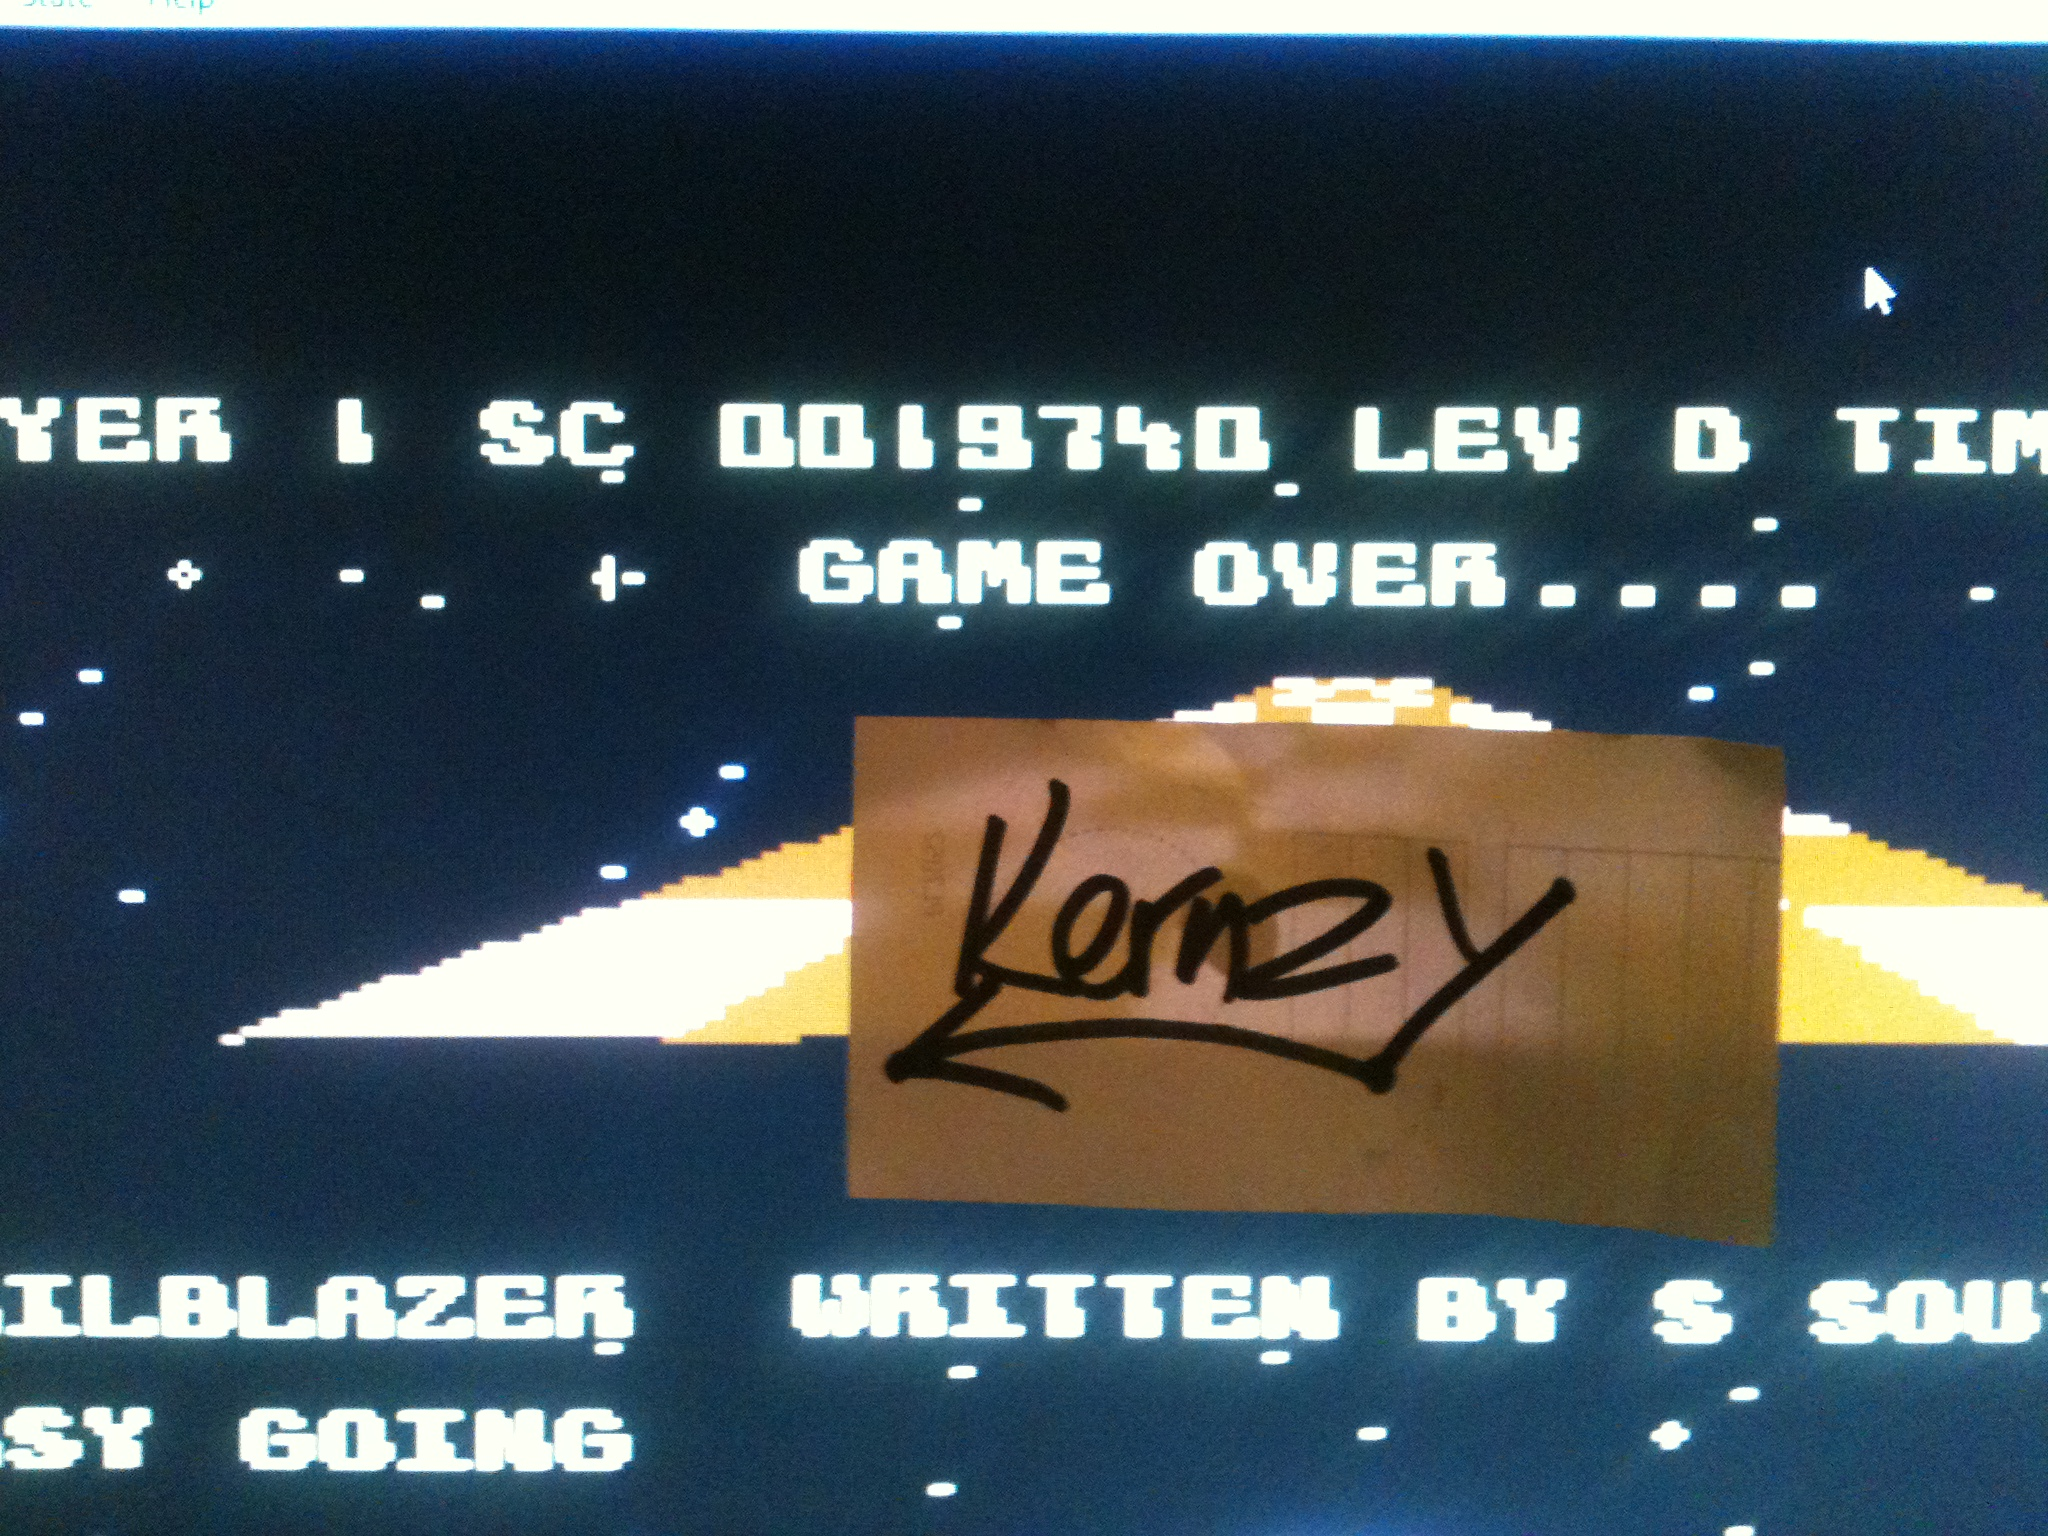 kernzy: Trailblazer (Commodore 64 Emulated) 19,740 points on 2015-05-13 19:15:59